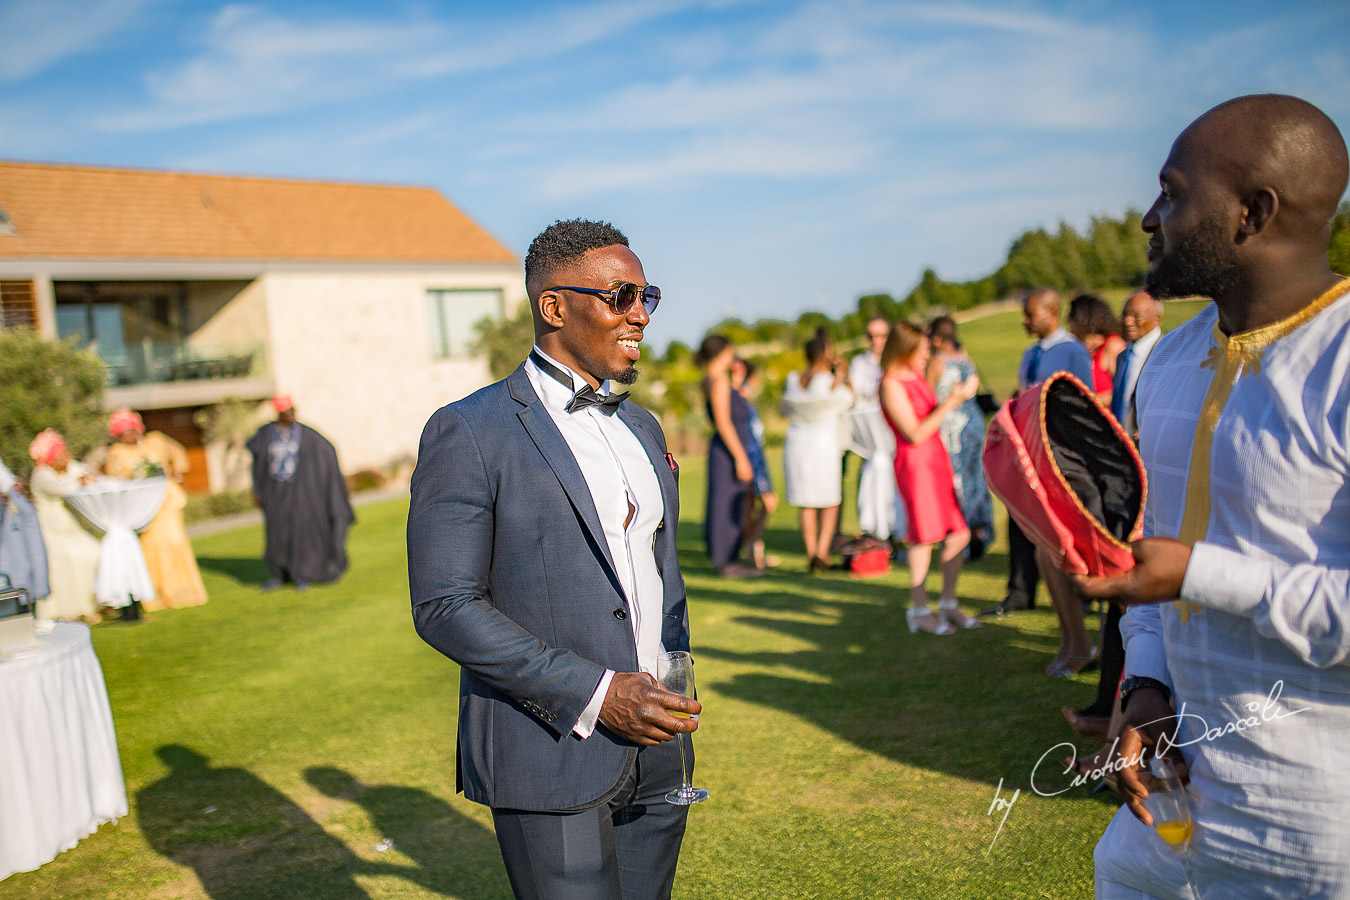 Wedding moments captured at a wedding at Minthis Hills in Cyprus, by Cristian Dascalu.